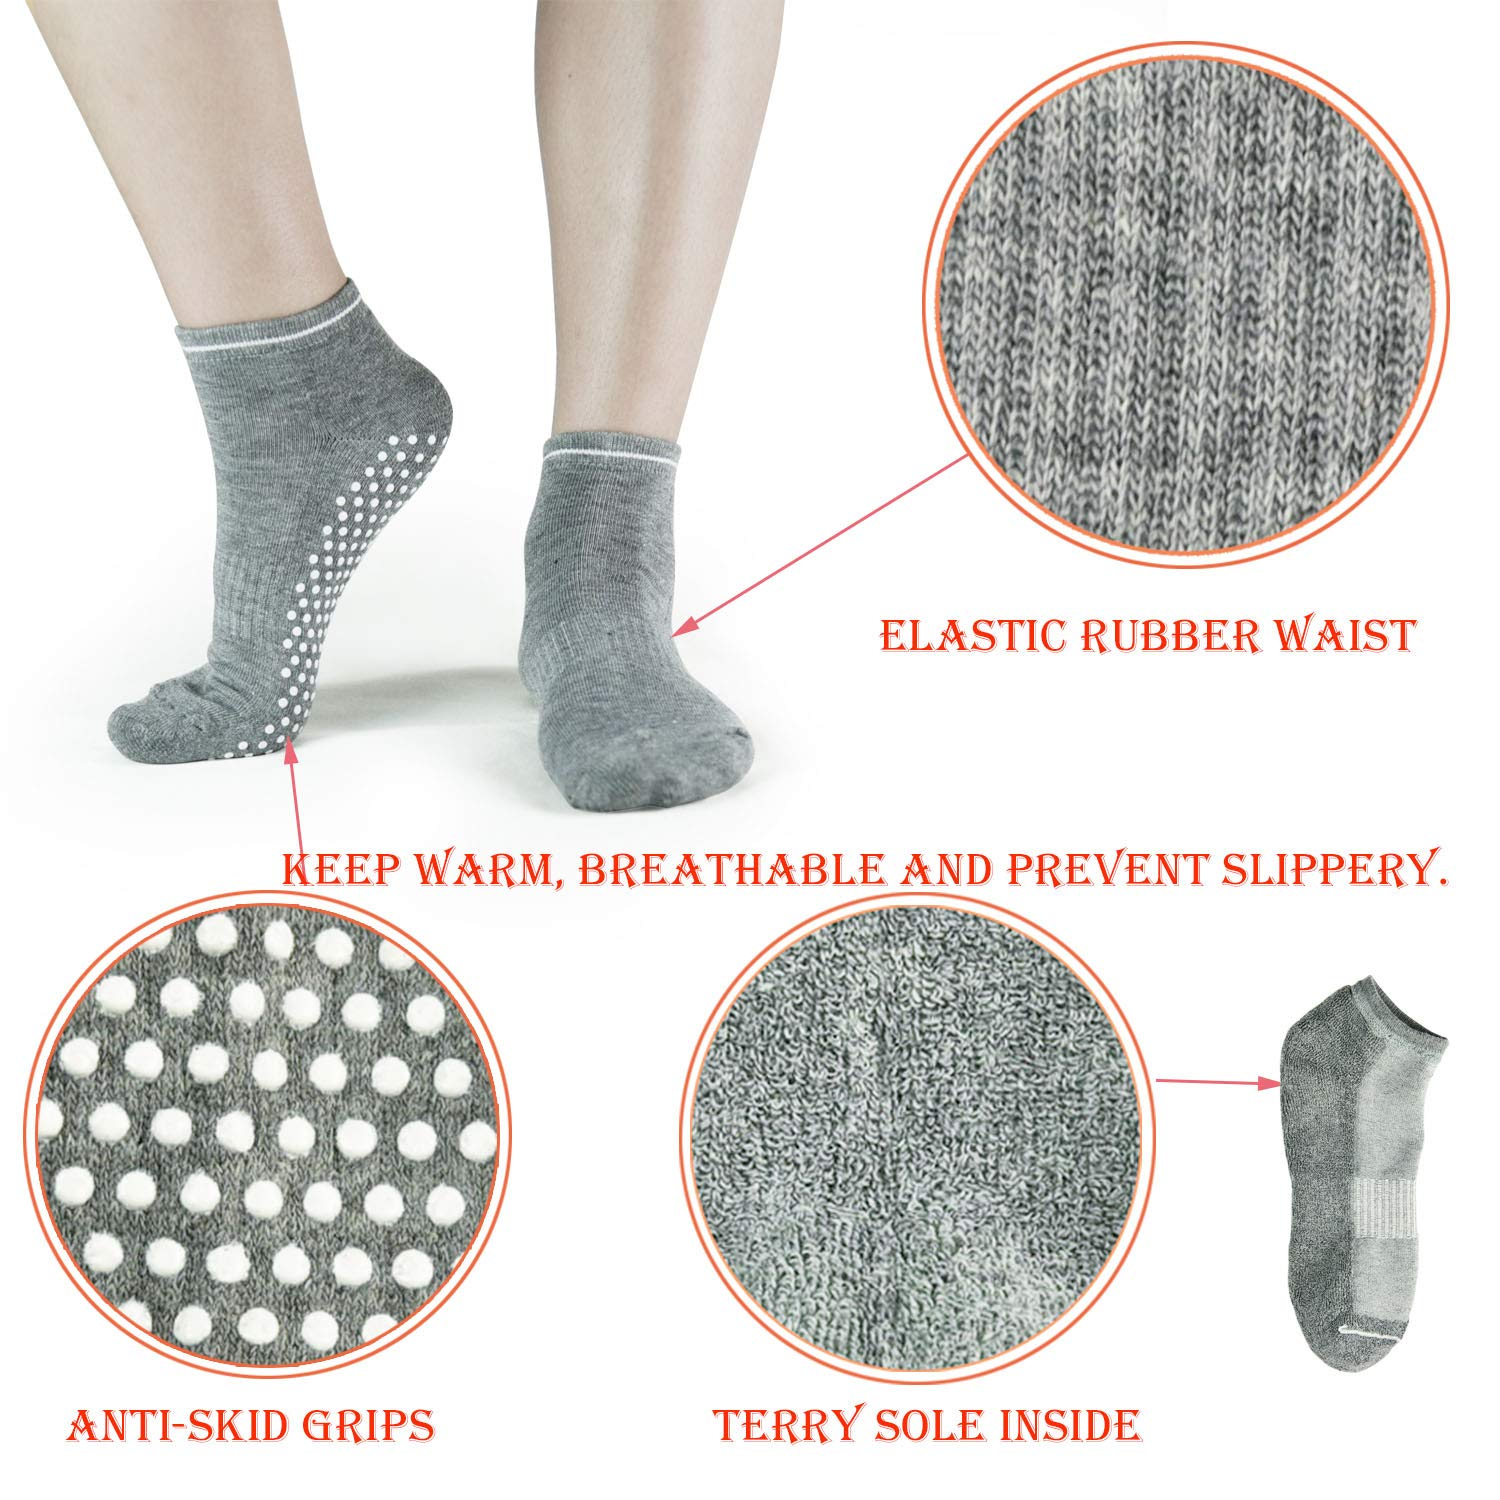 Amazon.com: Grips - Calcetines antideslizantes para pilates ...